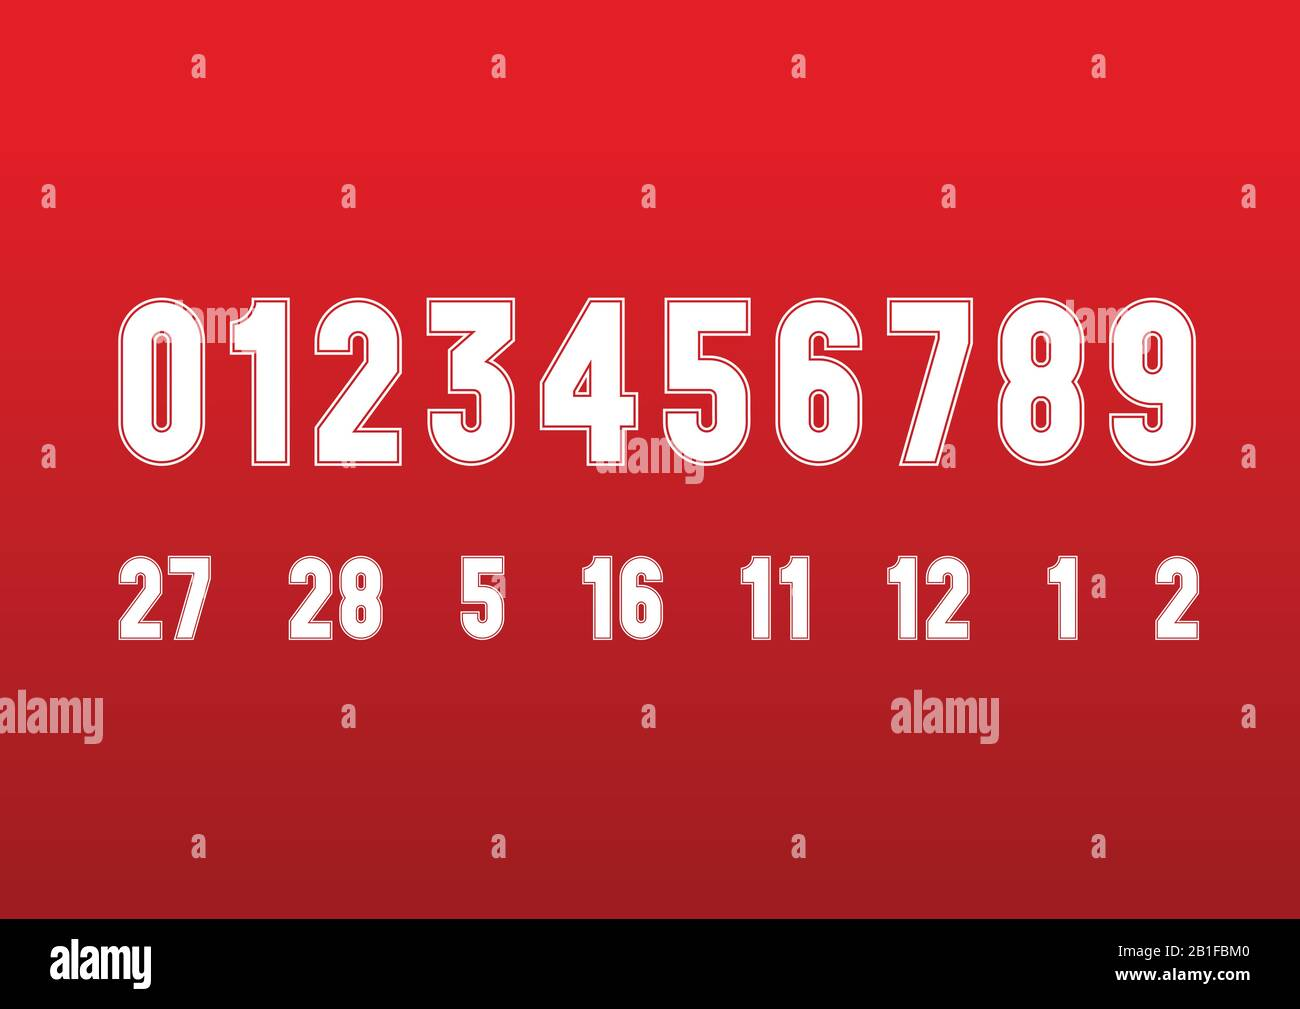 Vintage Style Ferrari Formula 1 Race Numbers Font On The Red Background Vector Graphics Stock Vector Image Art Alamy